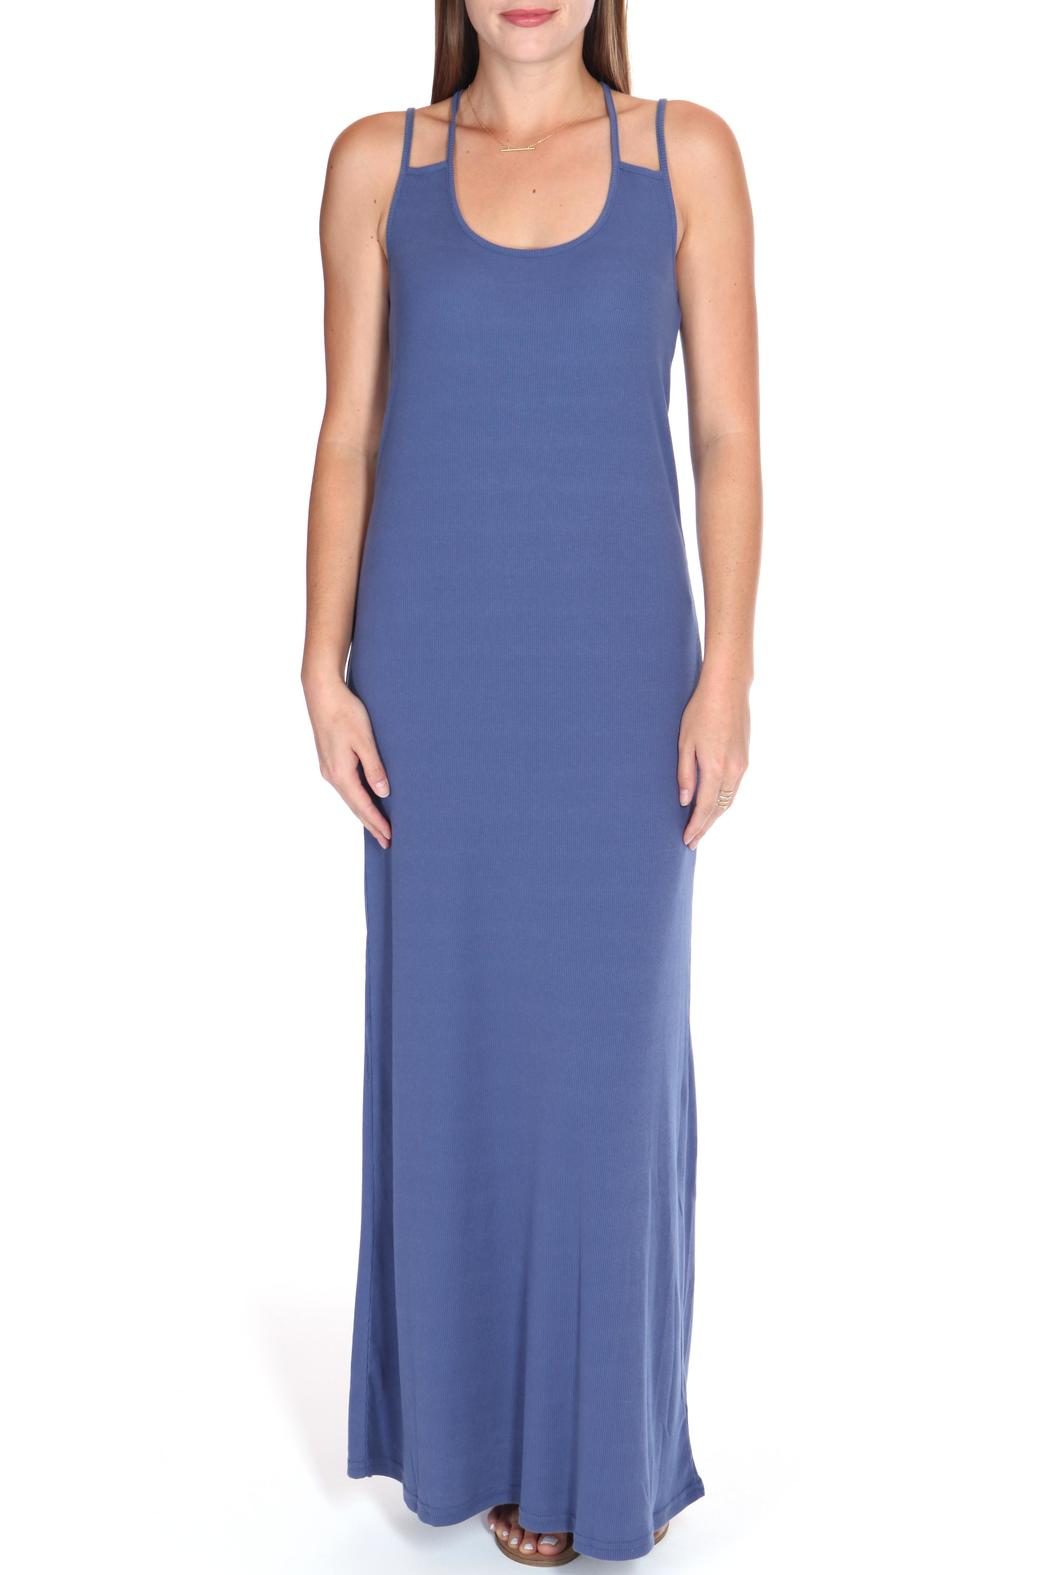 ShopGoldies Cage-Back Maxi Dress from Los Angeles by ...